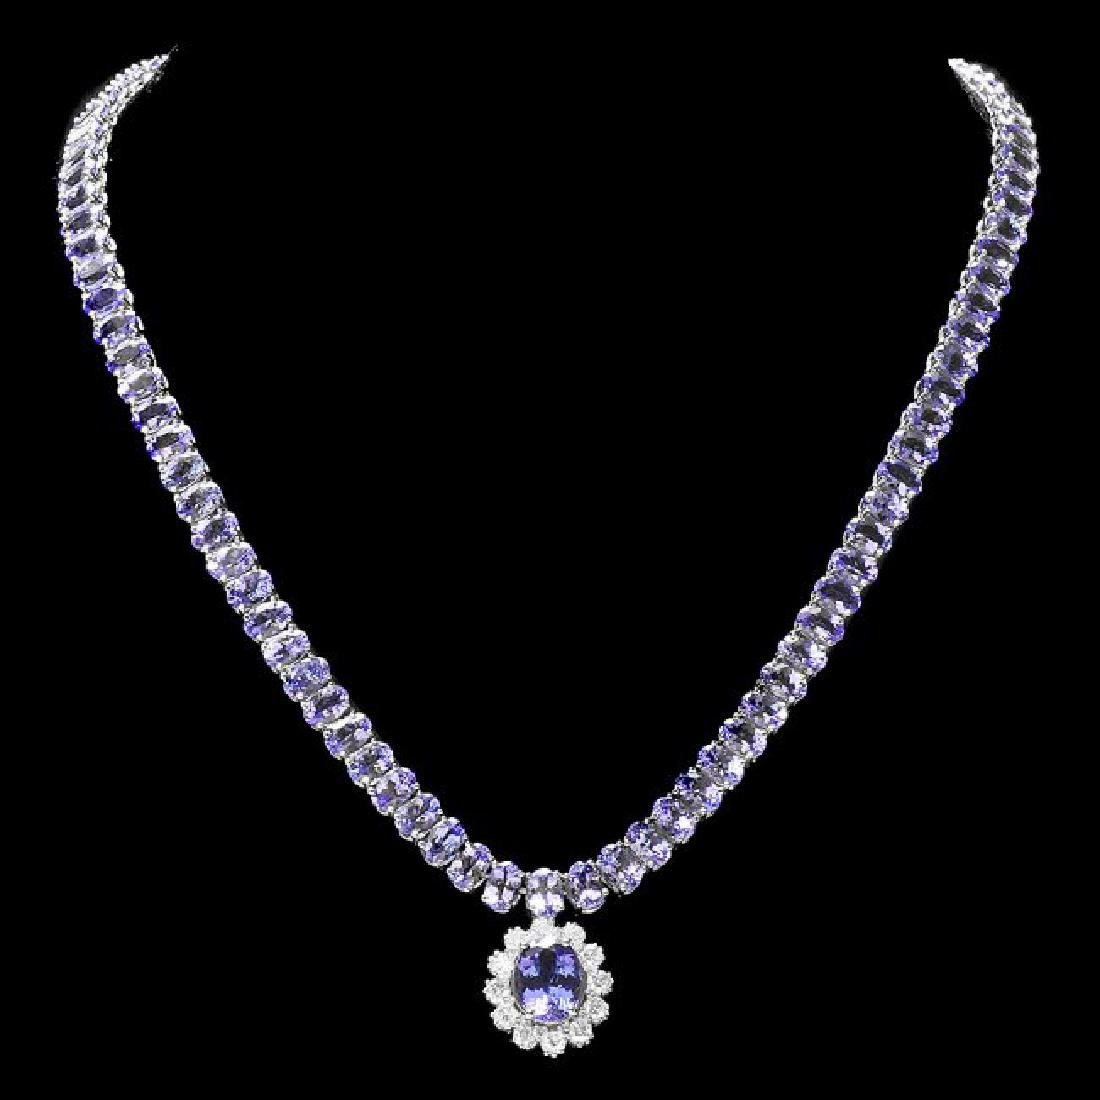 14k Gold 49ct Tanzanite 1.50ct Diamond Necklace - 2